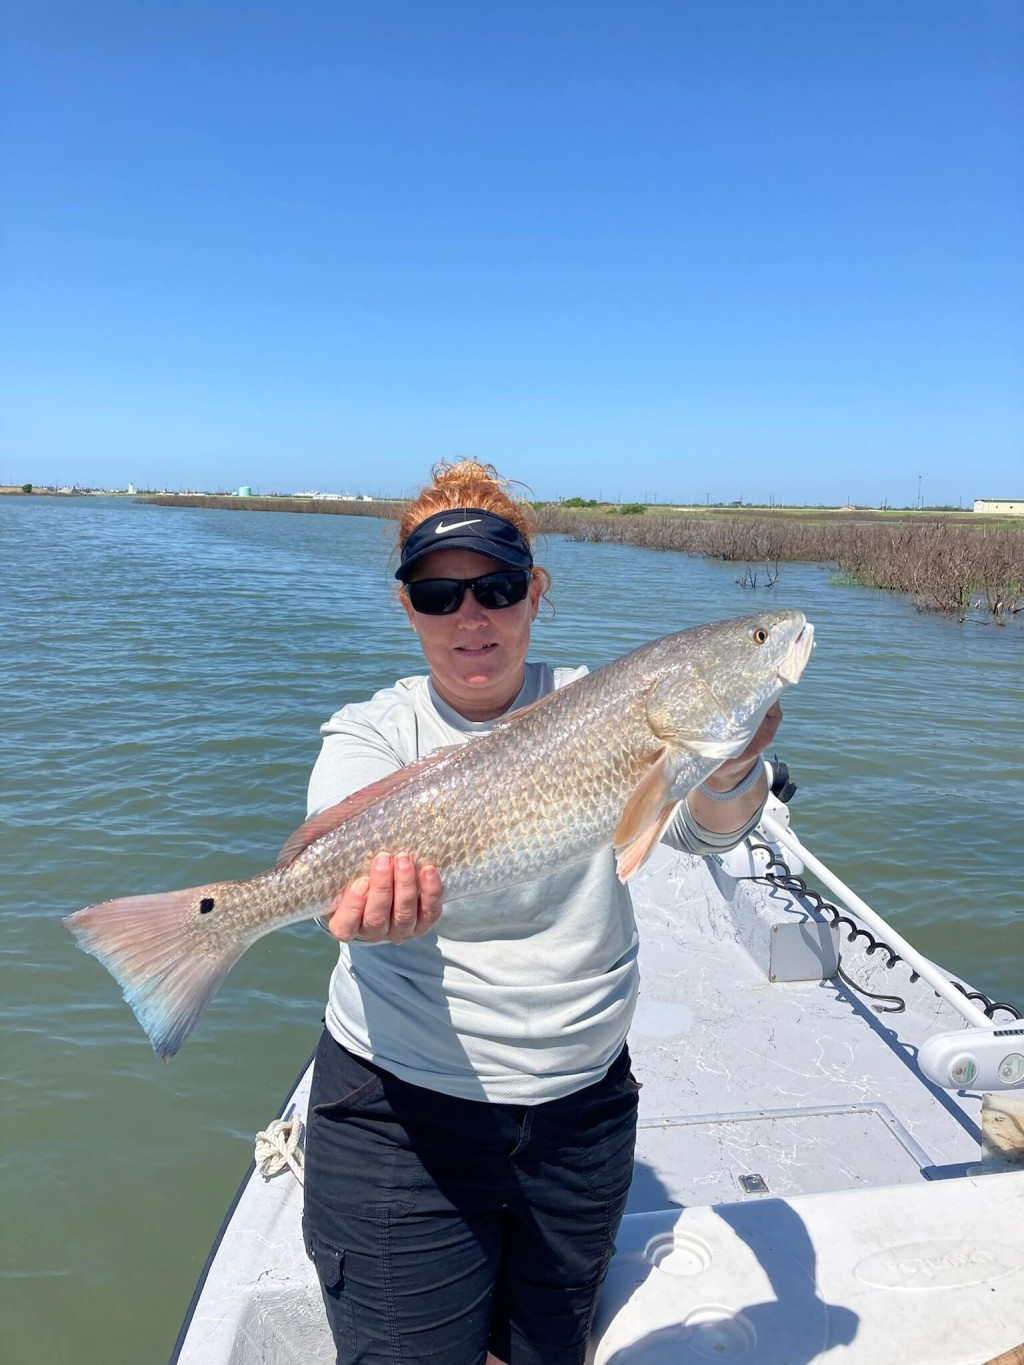 Keeping Up With the Jones Bay Fishing | Captain Experiences